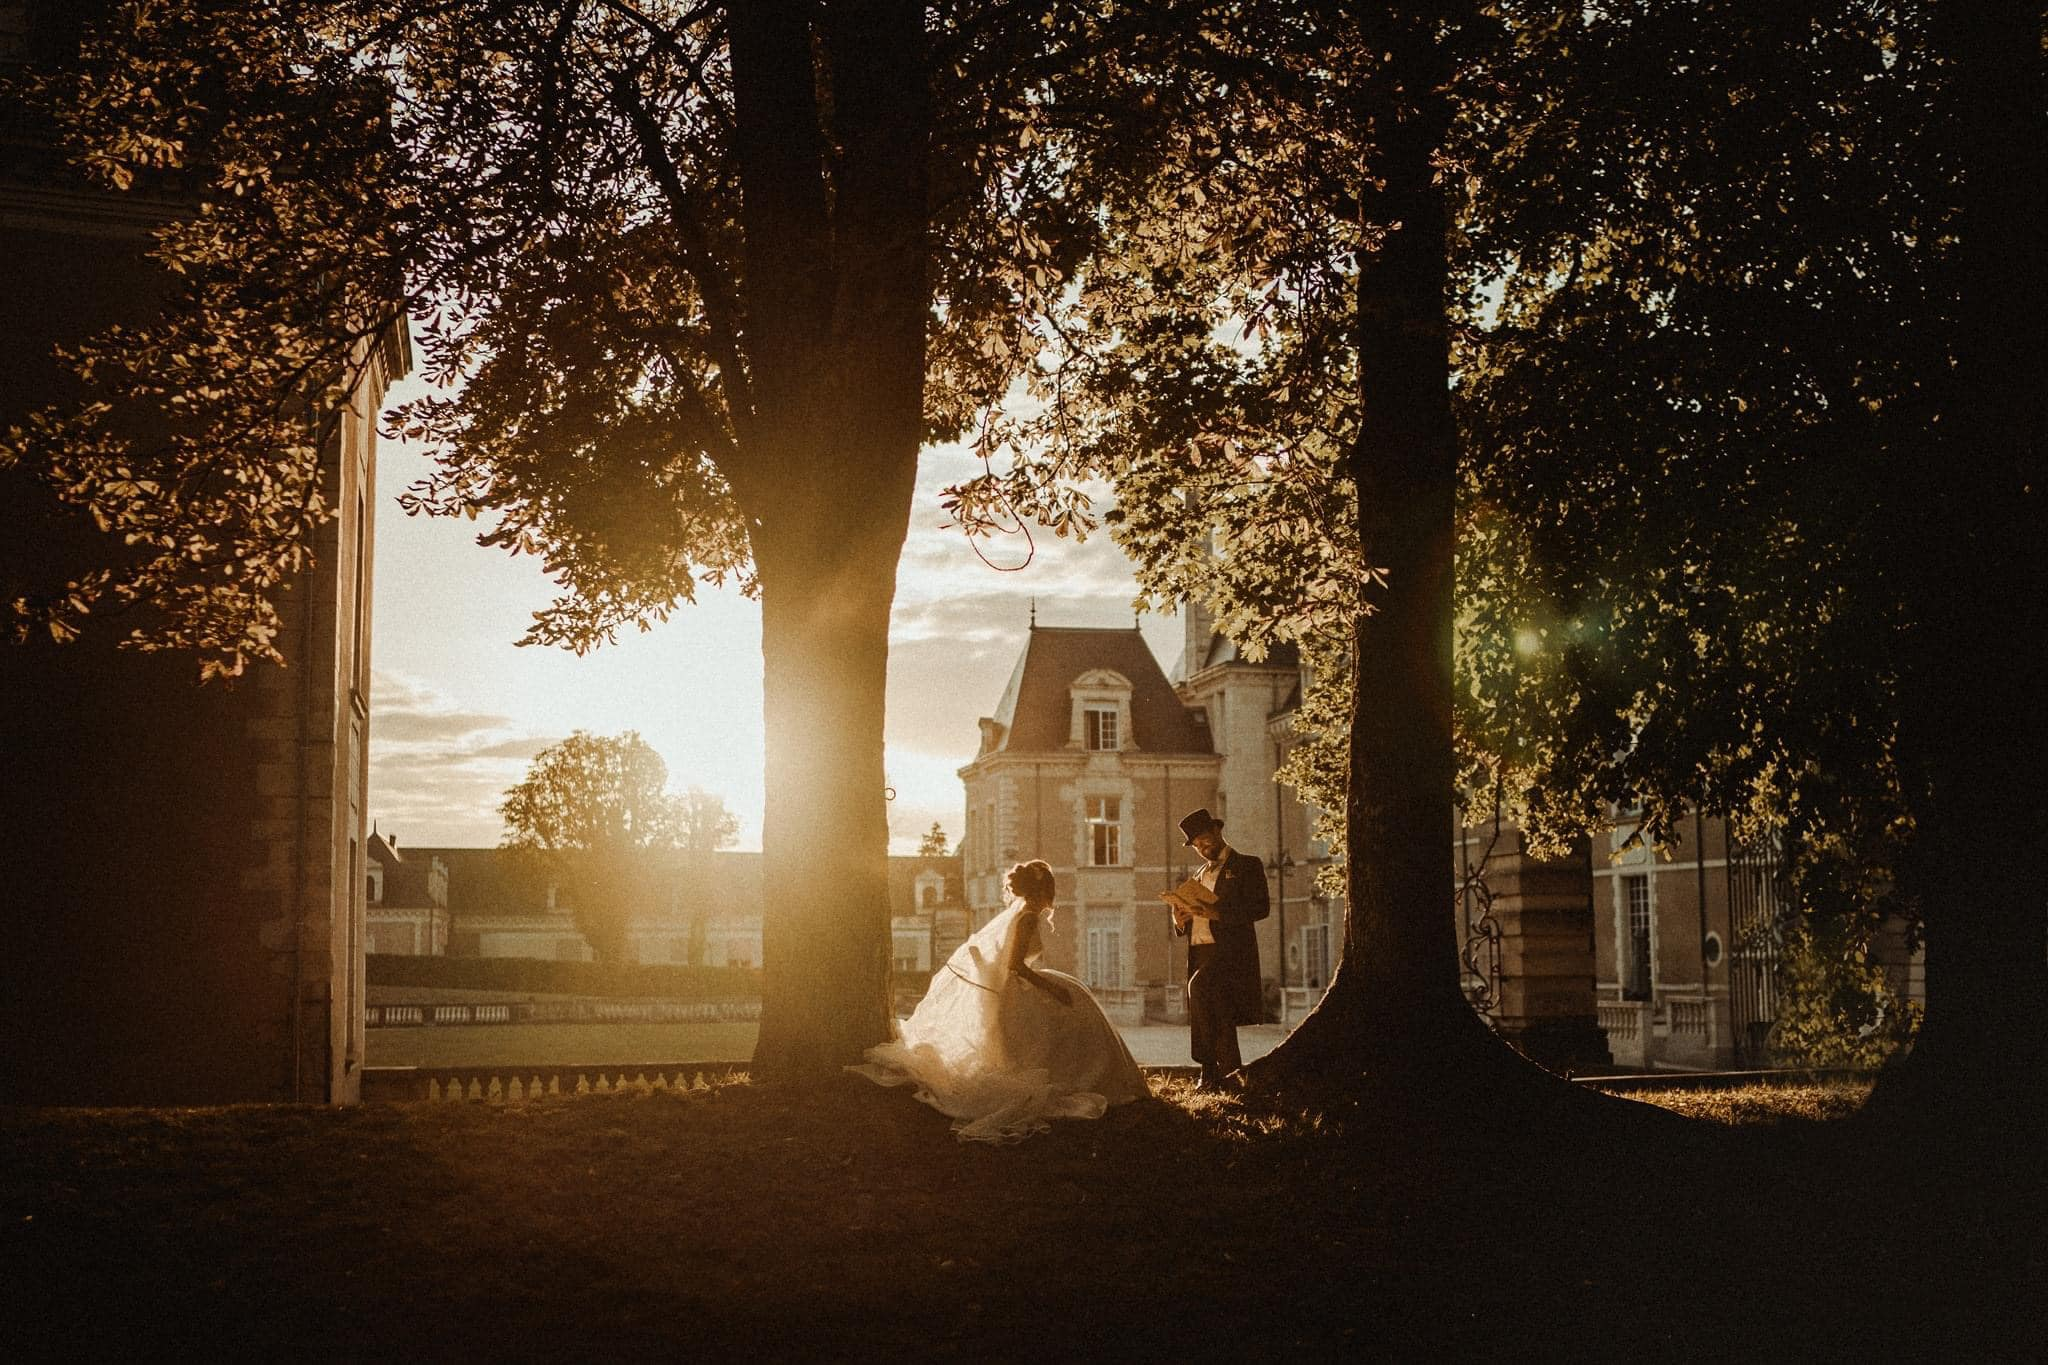 Bride and groom in the middle of the beauty of the venue as the sun starts to slowing go down behind them| Wedding photo